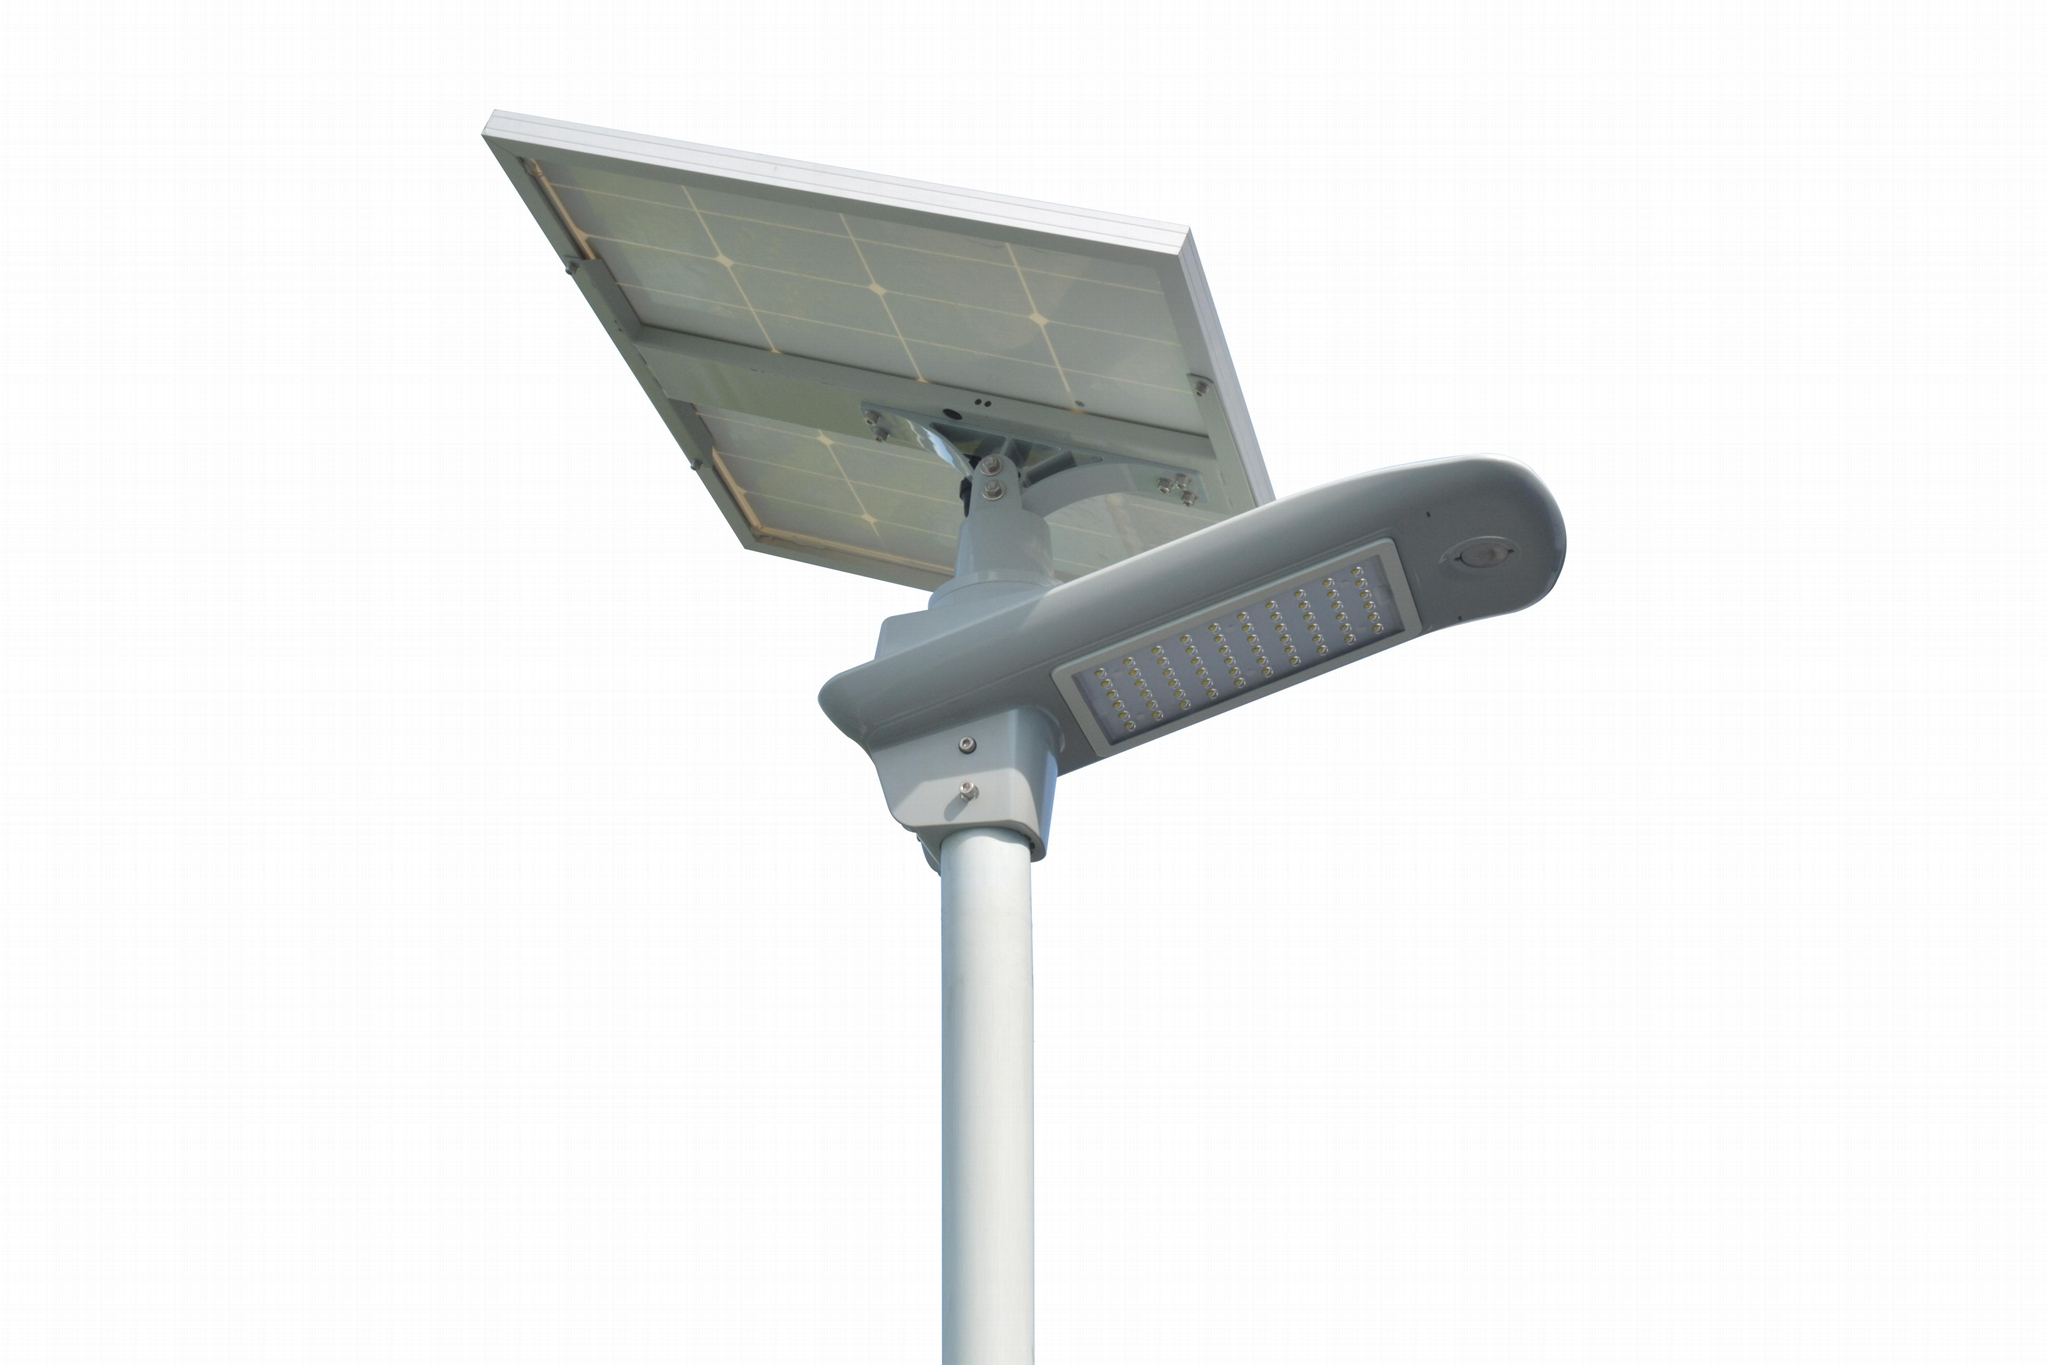 Lowcled street light project